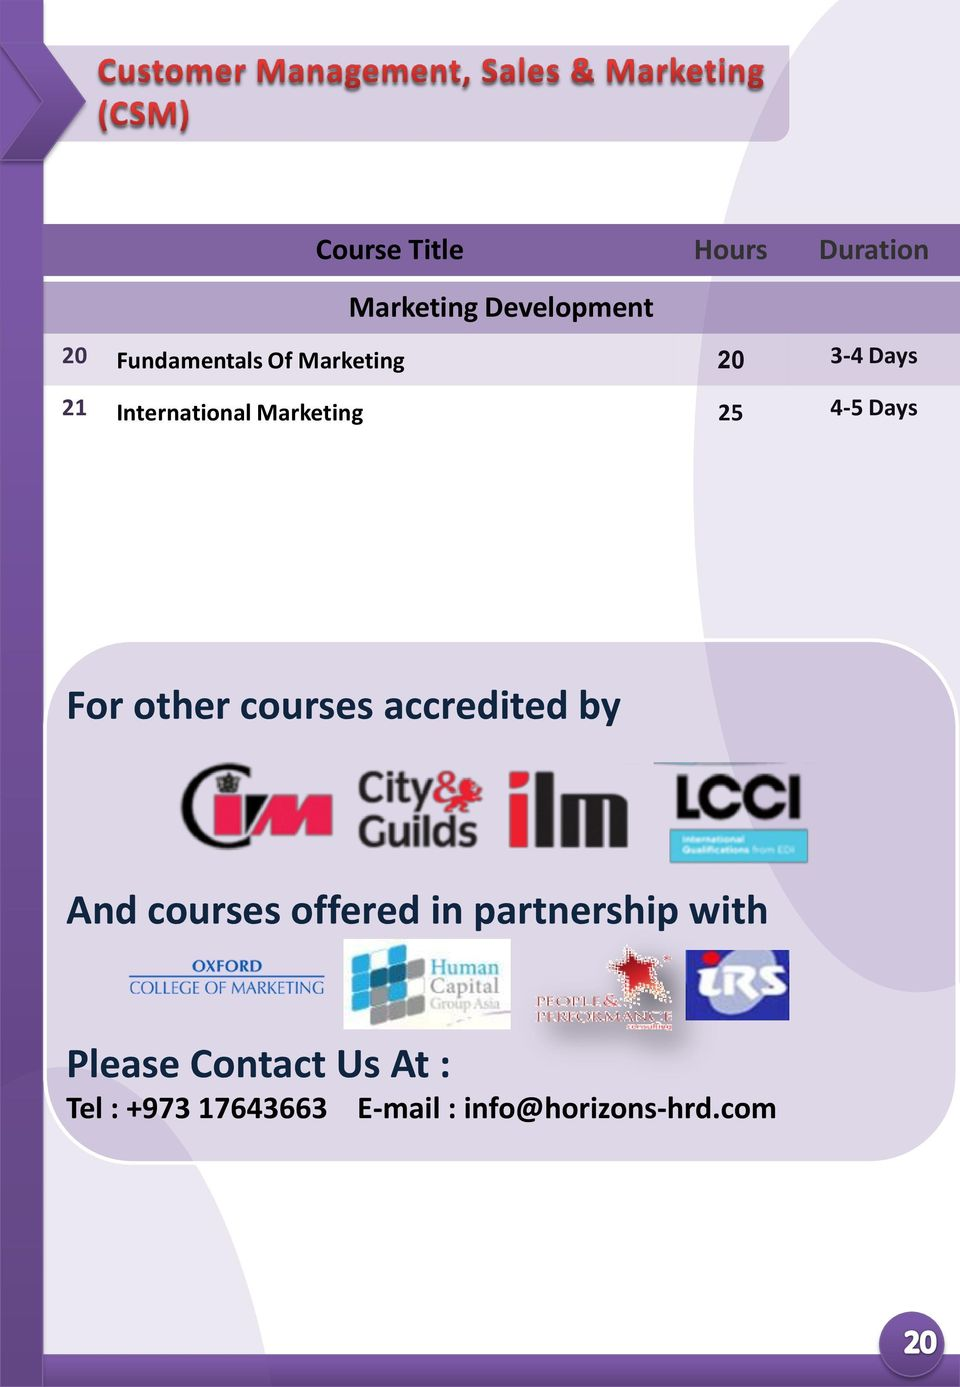 courses accredited by And courses offered in partnership with